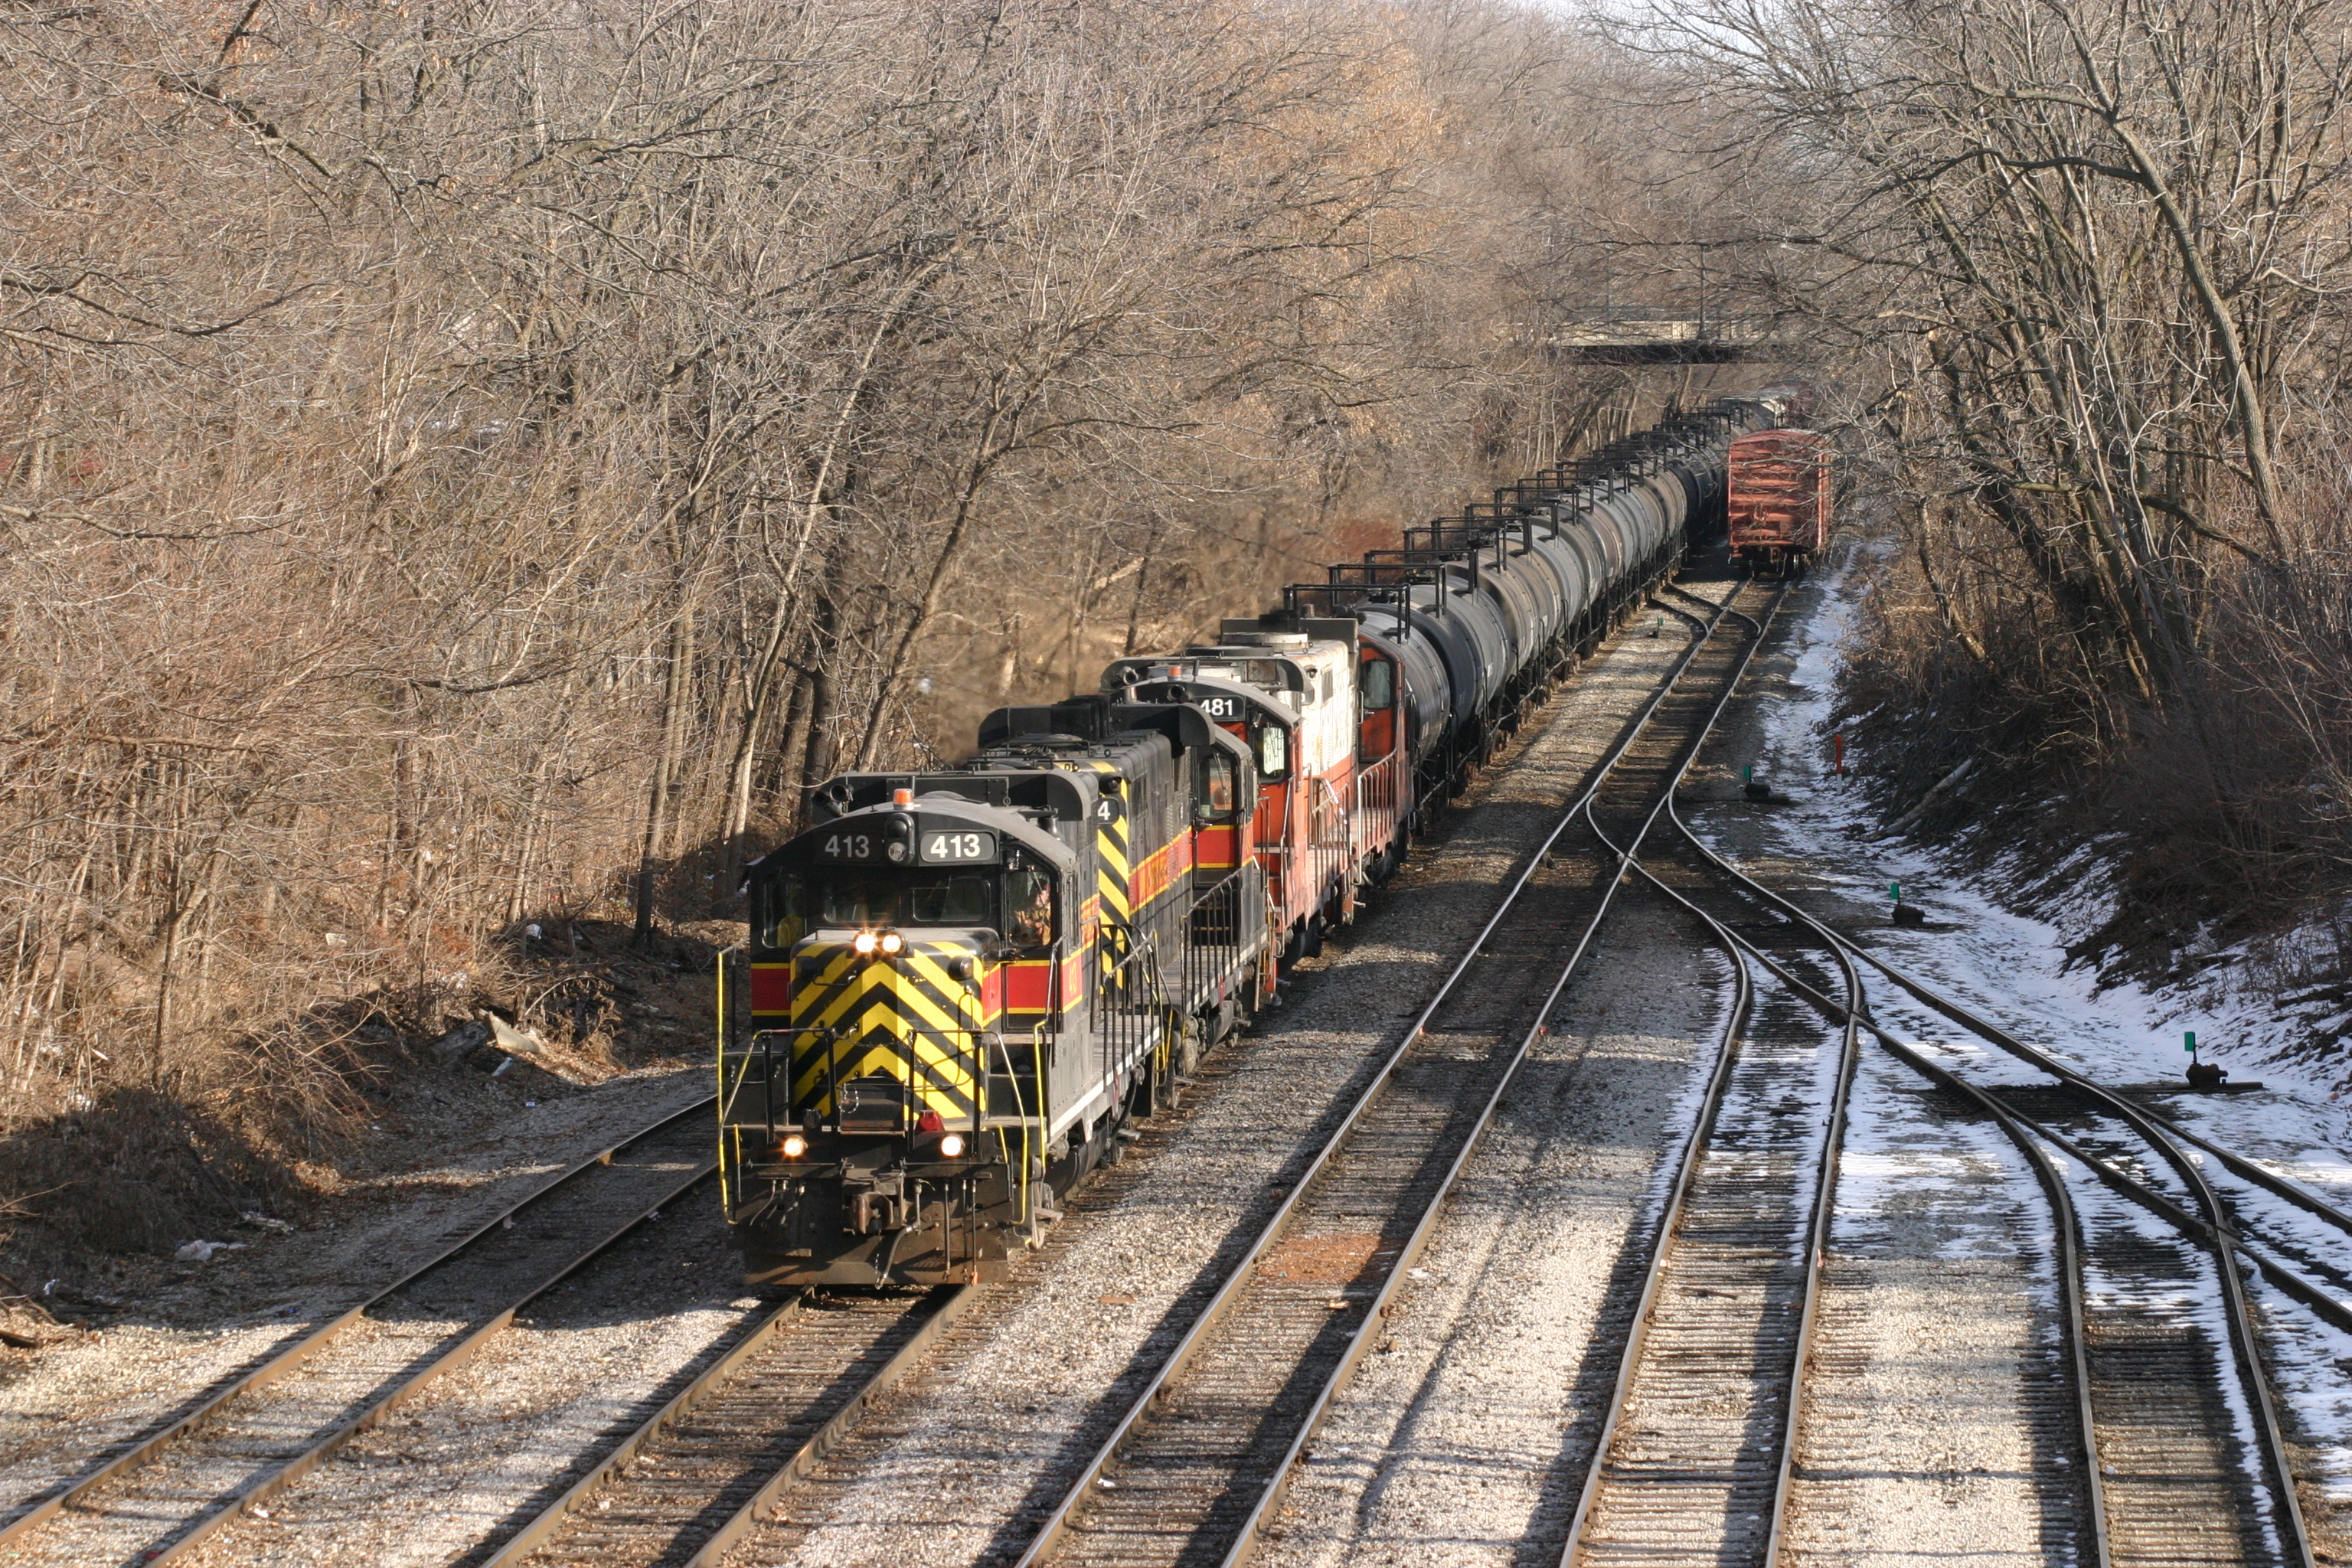 Looking east from the Dodge St. overpass at the Iowa City yard in Dec-2003